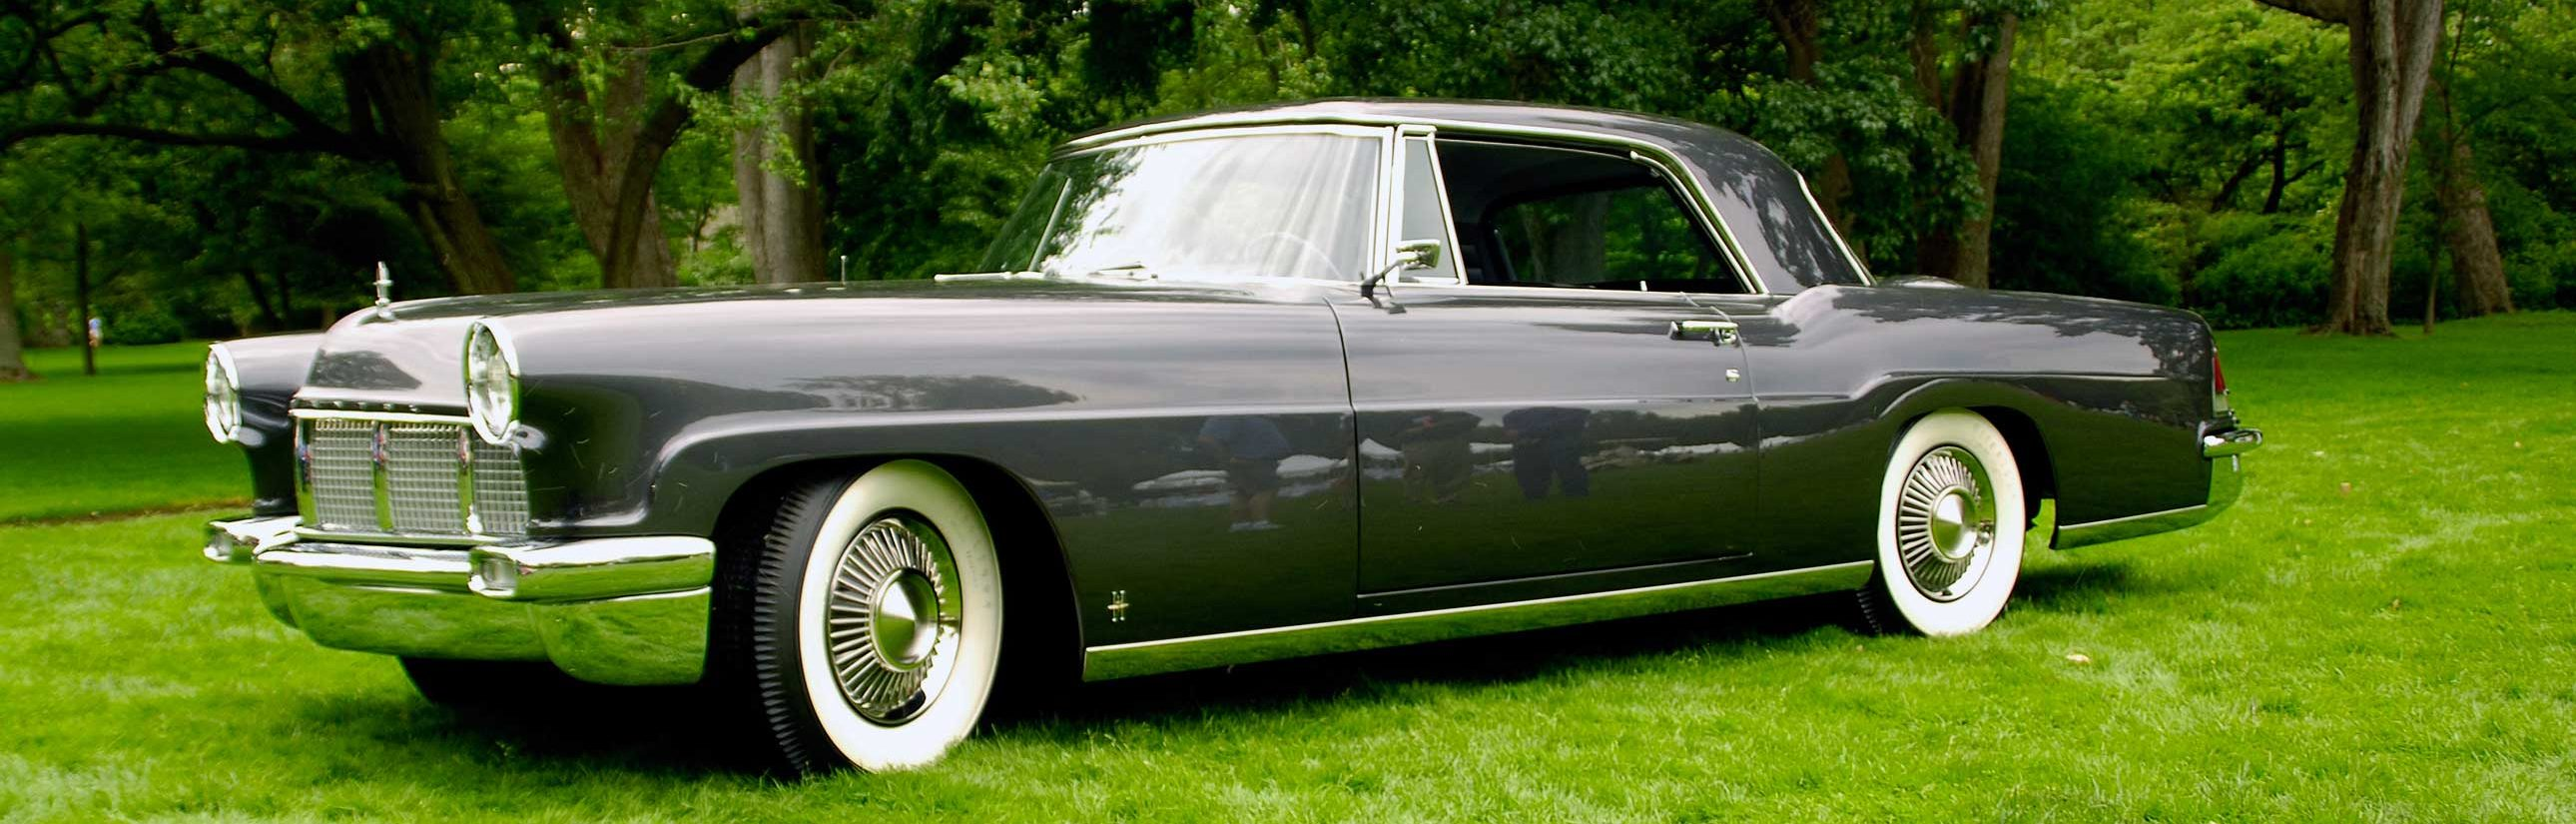 1956 Continental Mark II C56 J 3348 Leon Flagg Curt Lamon